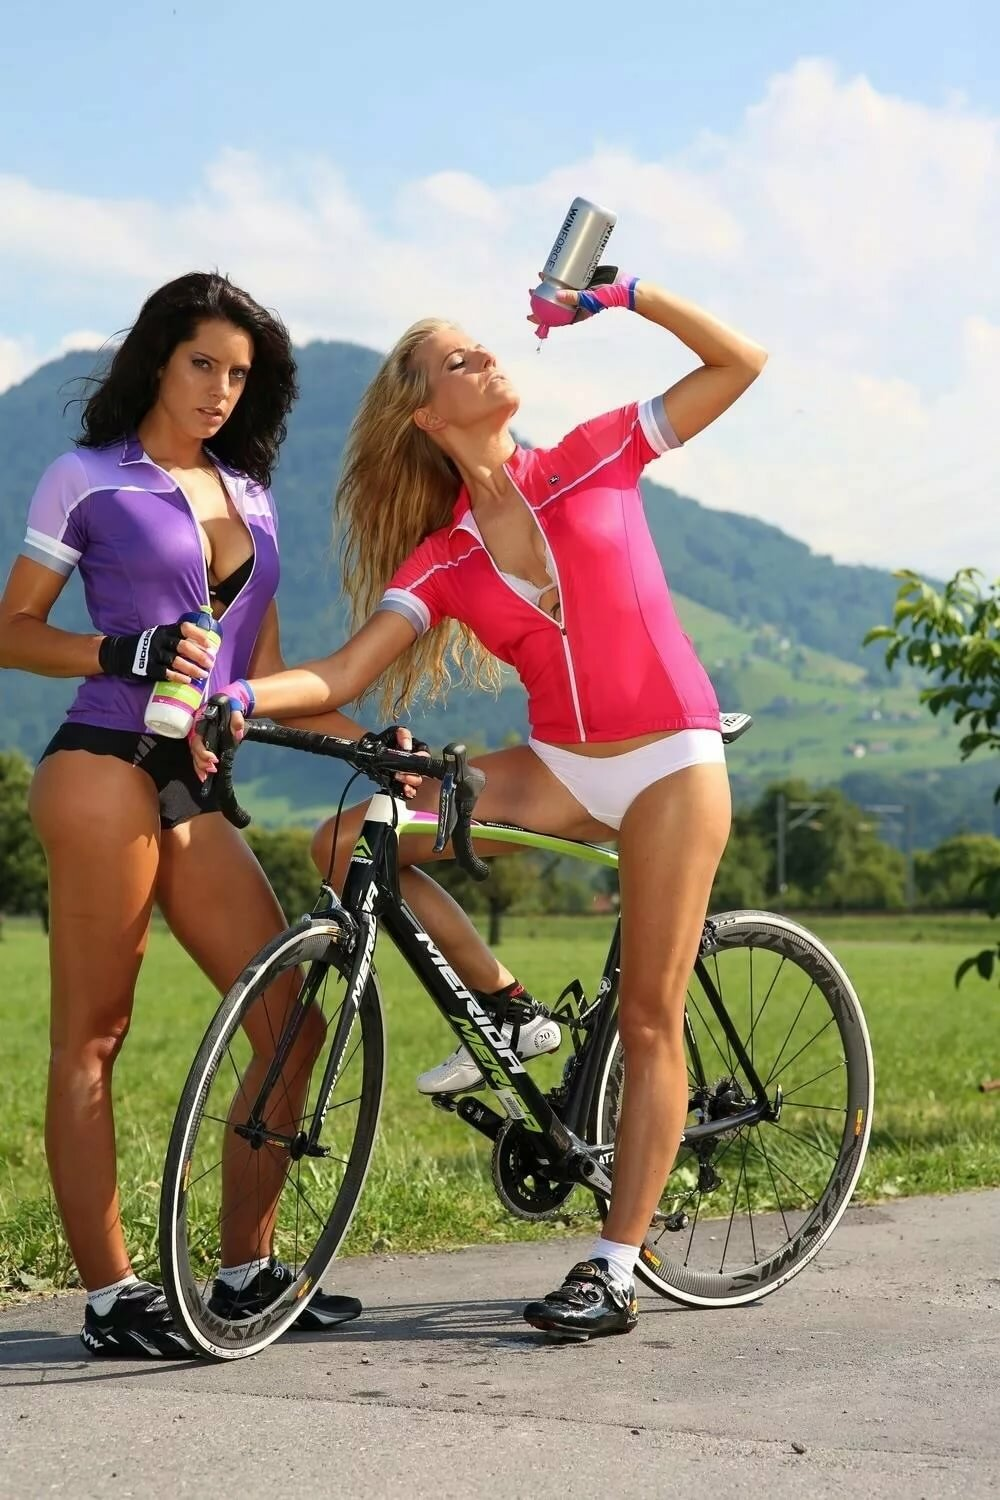 bicycle-hot-women